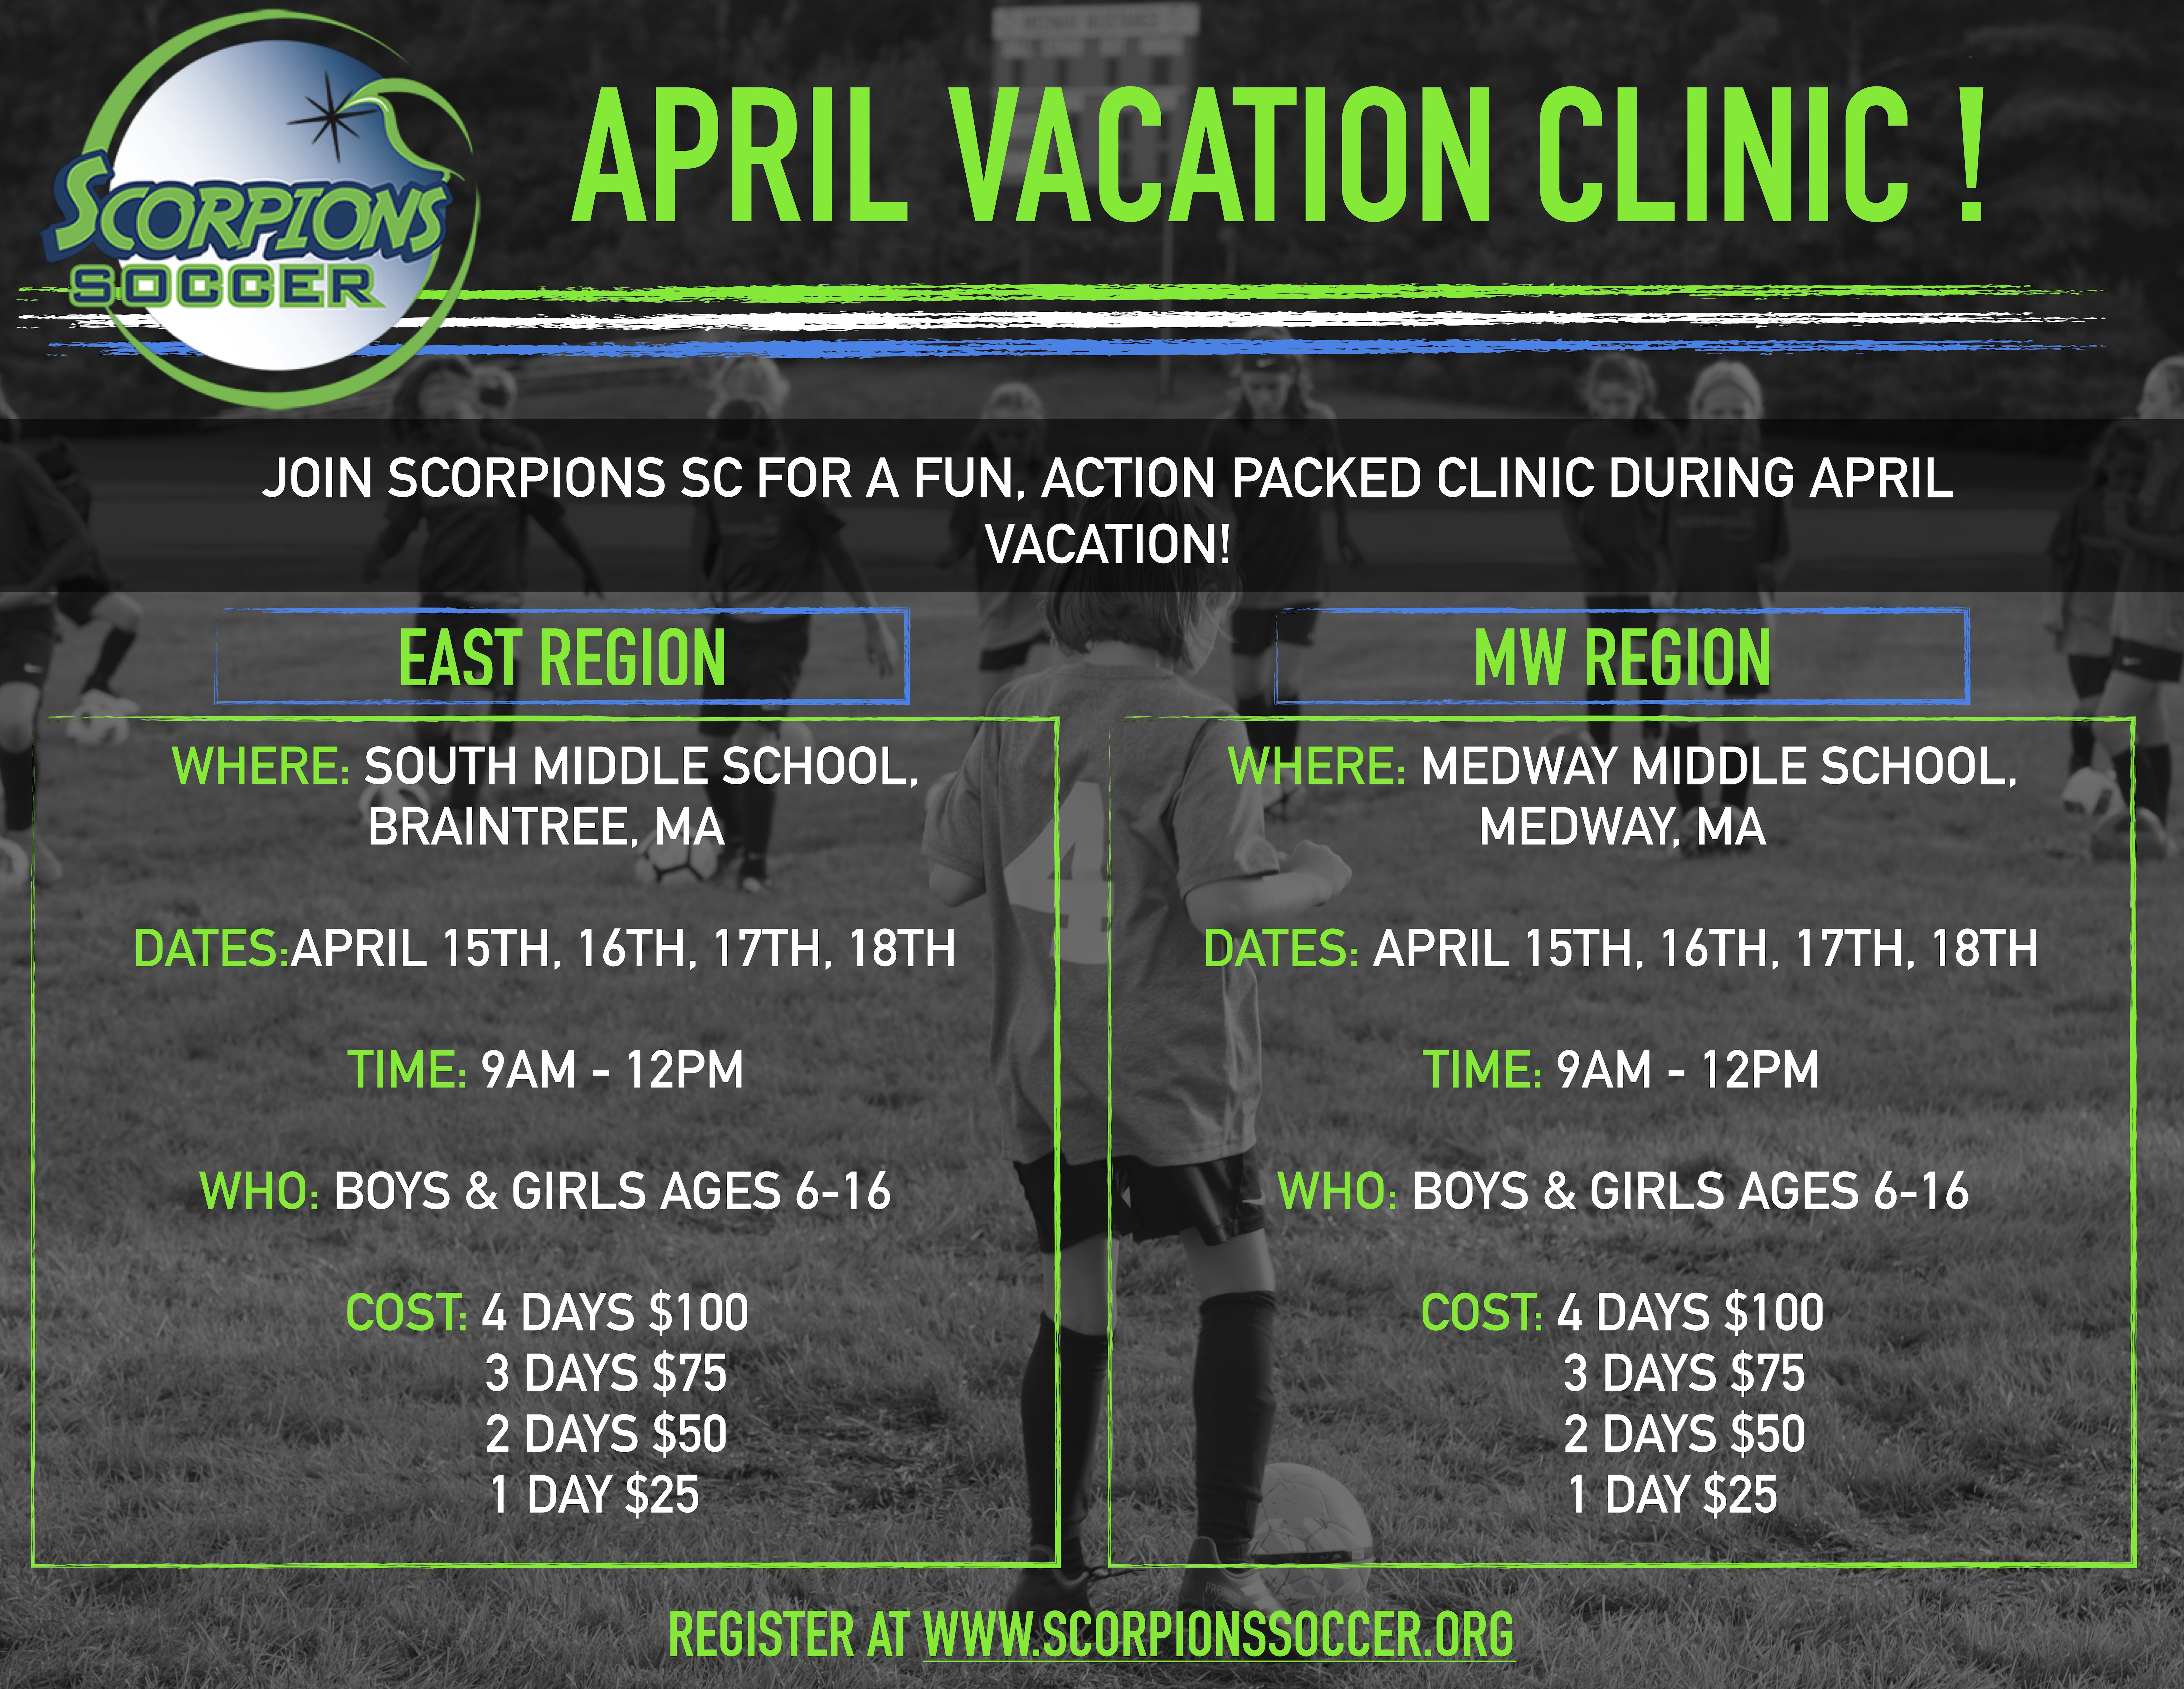 APRIL VACATION CLINICS ANNOUNCED !